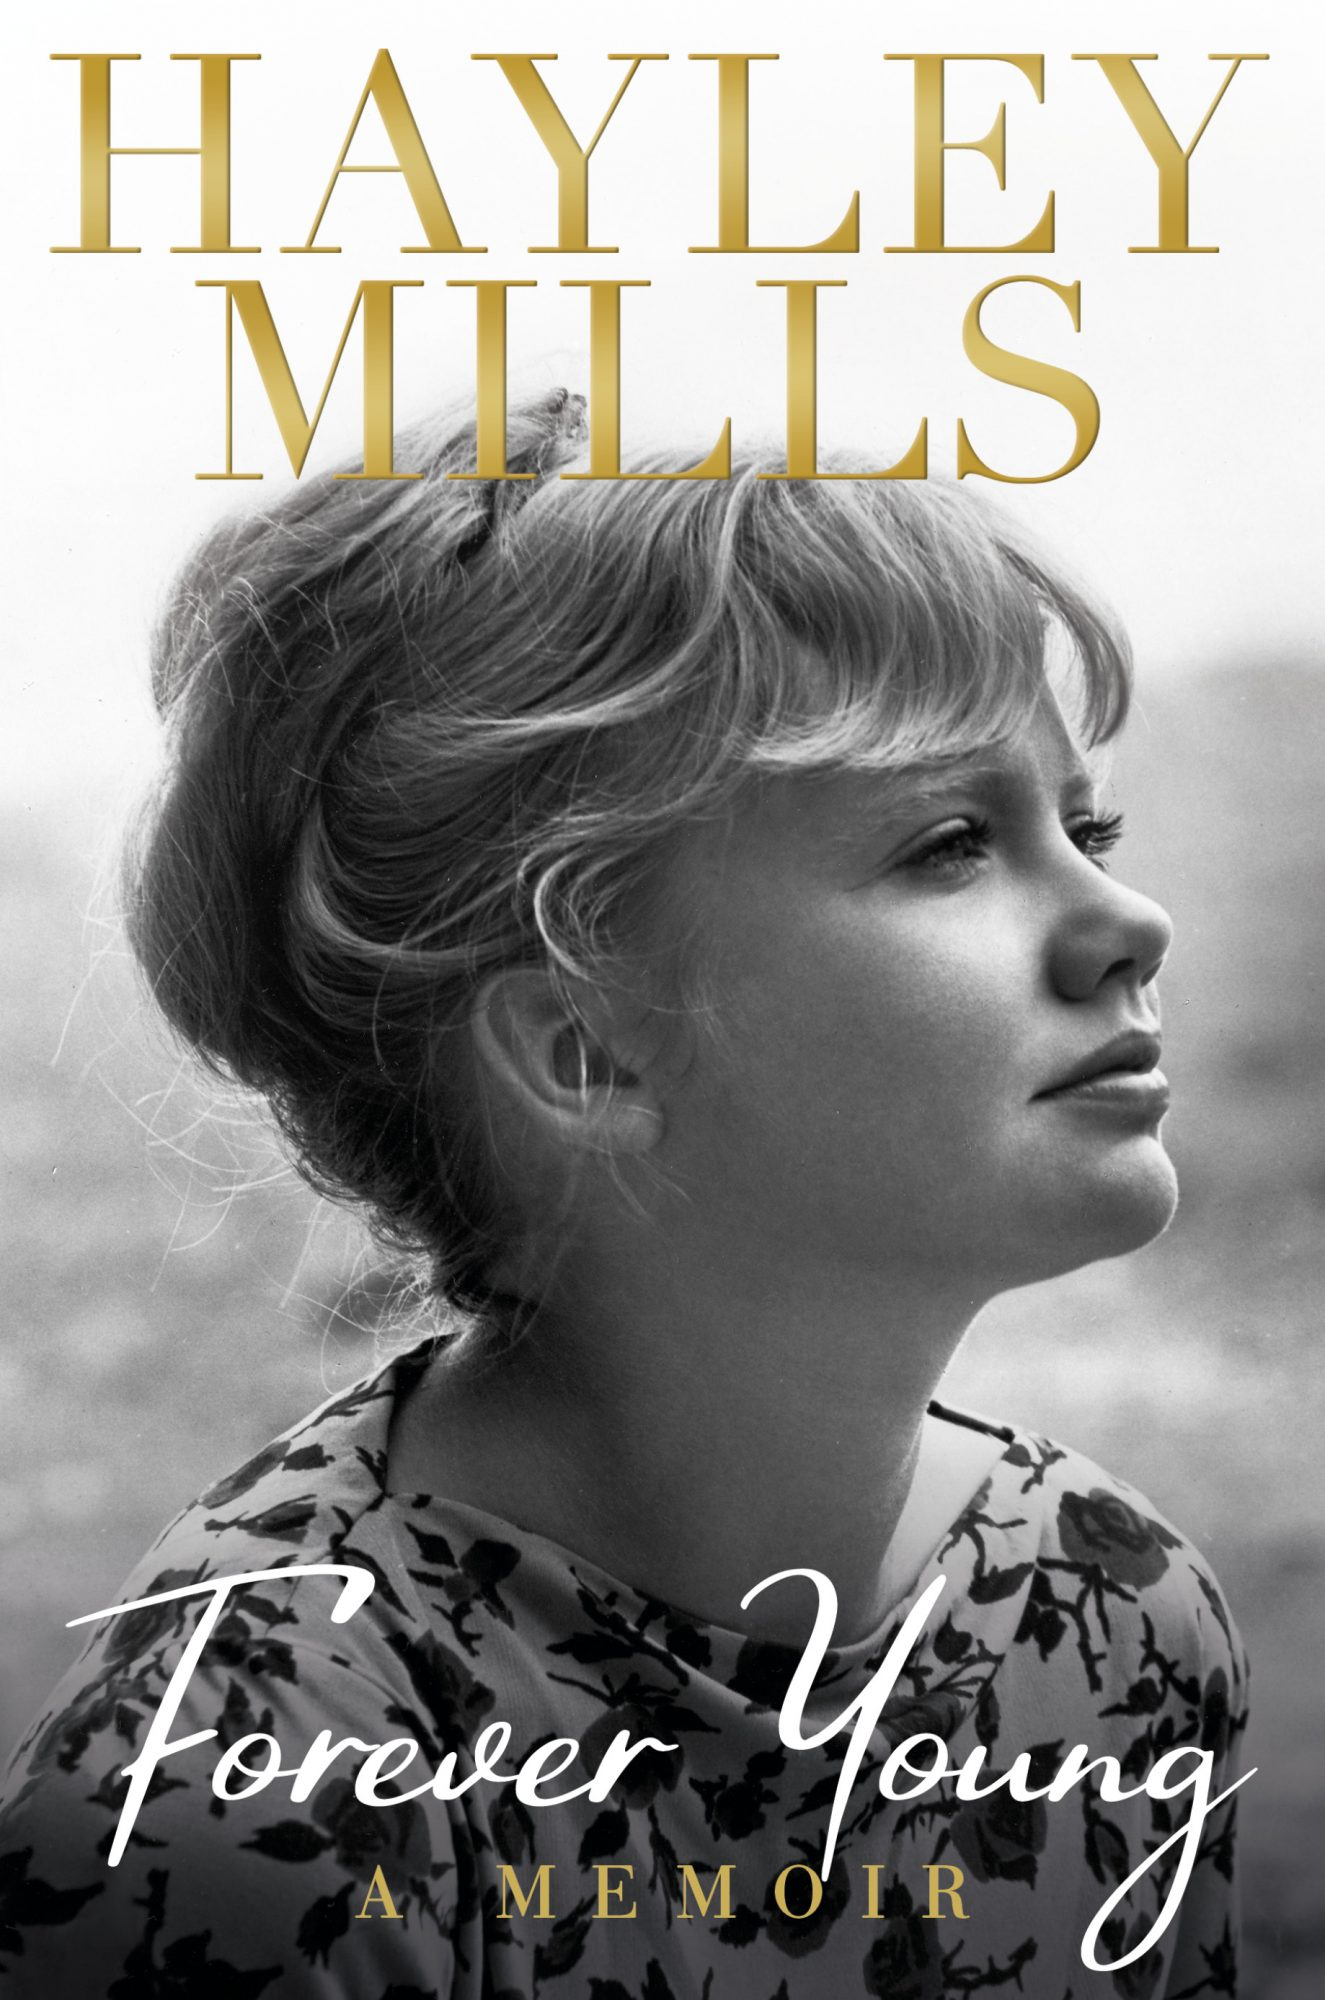 forever young by Hayley mills